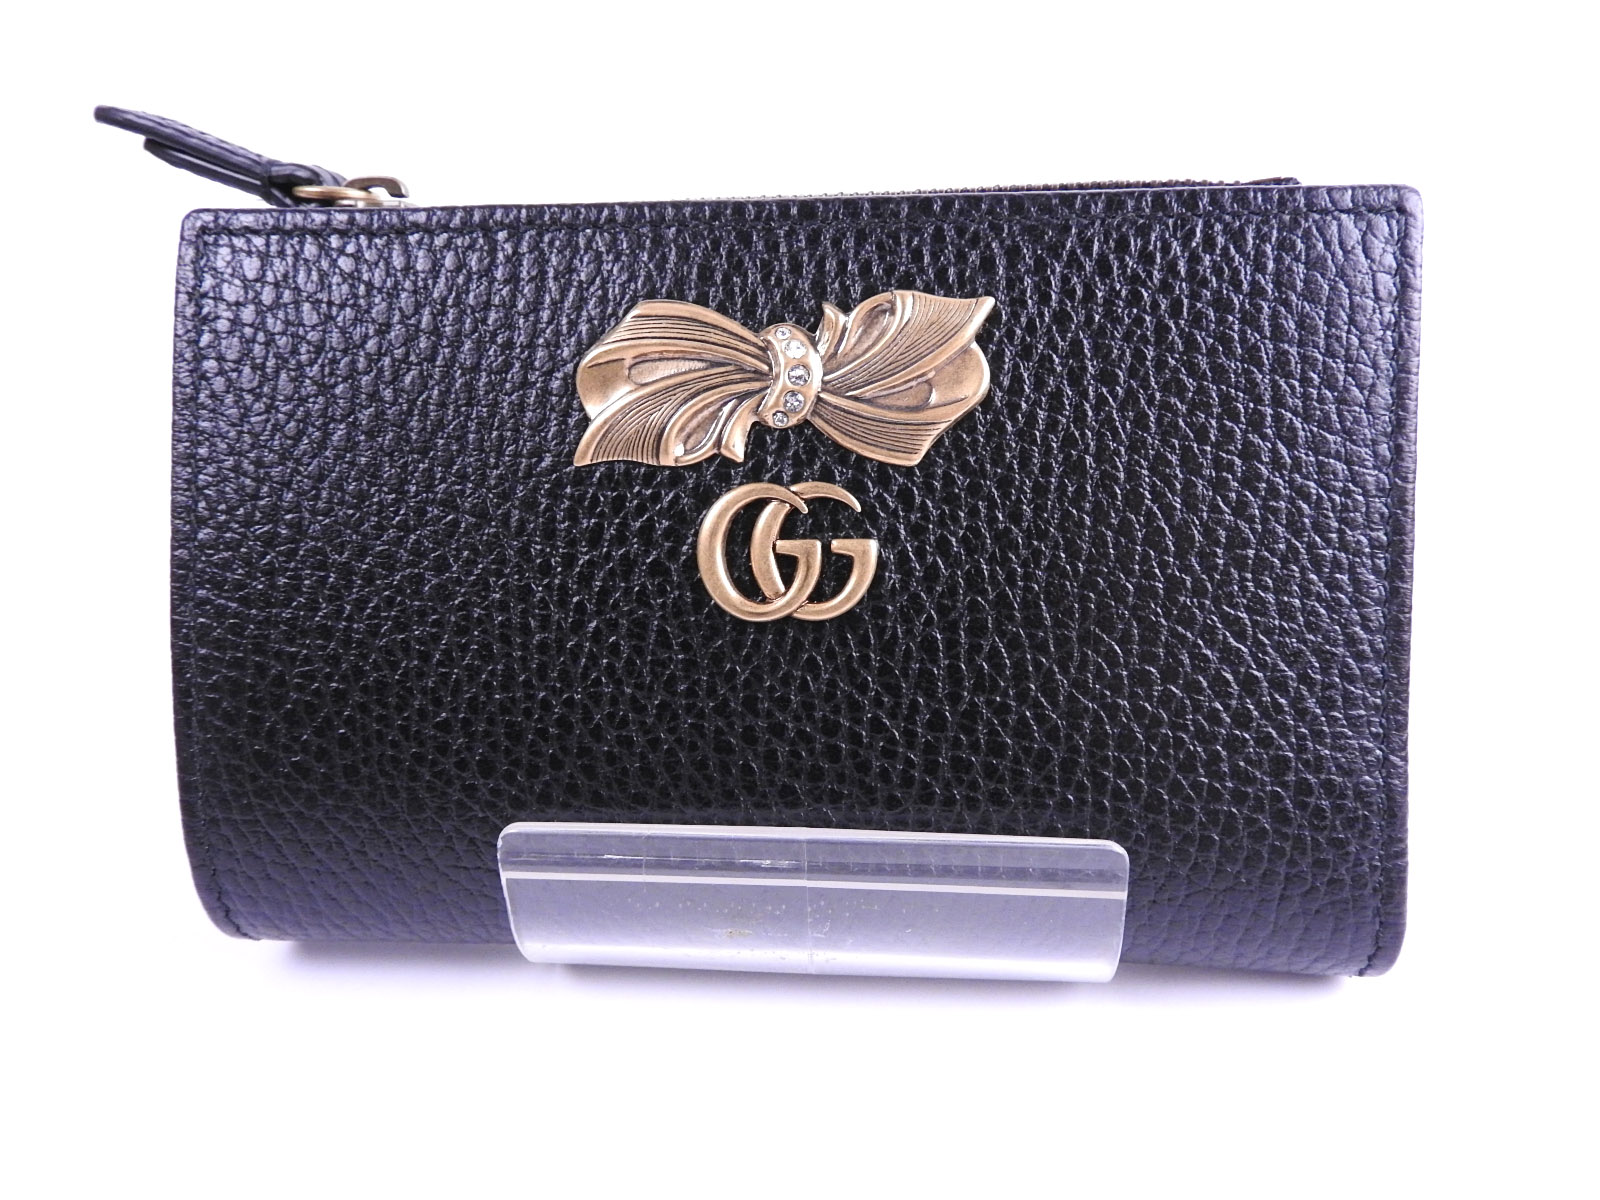 6b67cbf4619 Auth GUCCI Unused GG Marmont Rhinestone Ribbon Bifold Wallet Leather Black  Gold 524300 A-8139